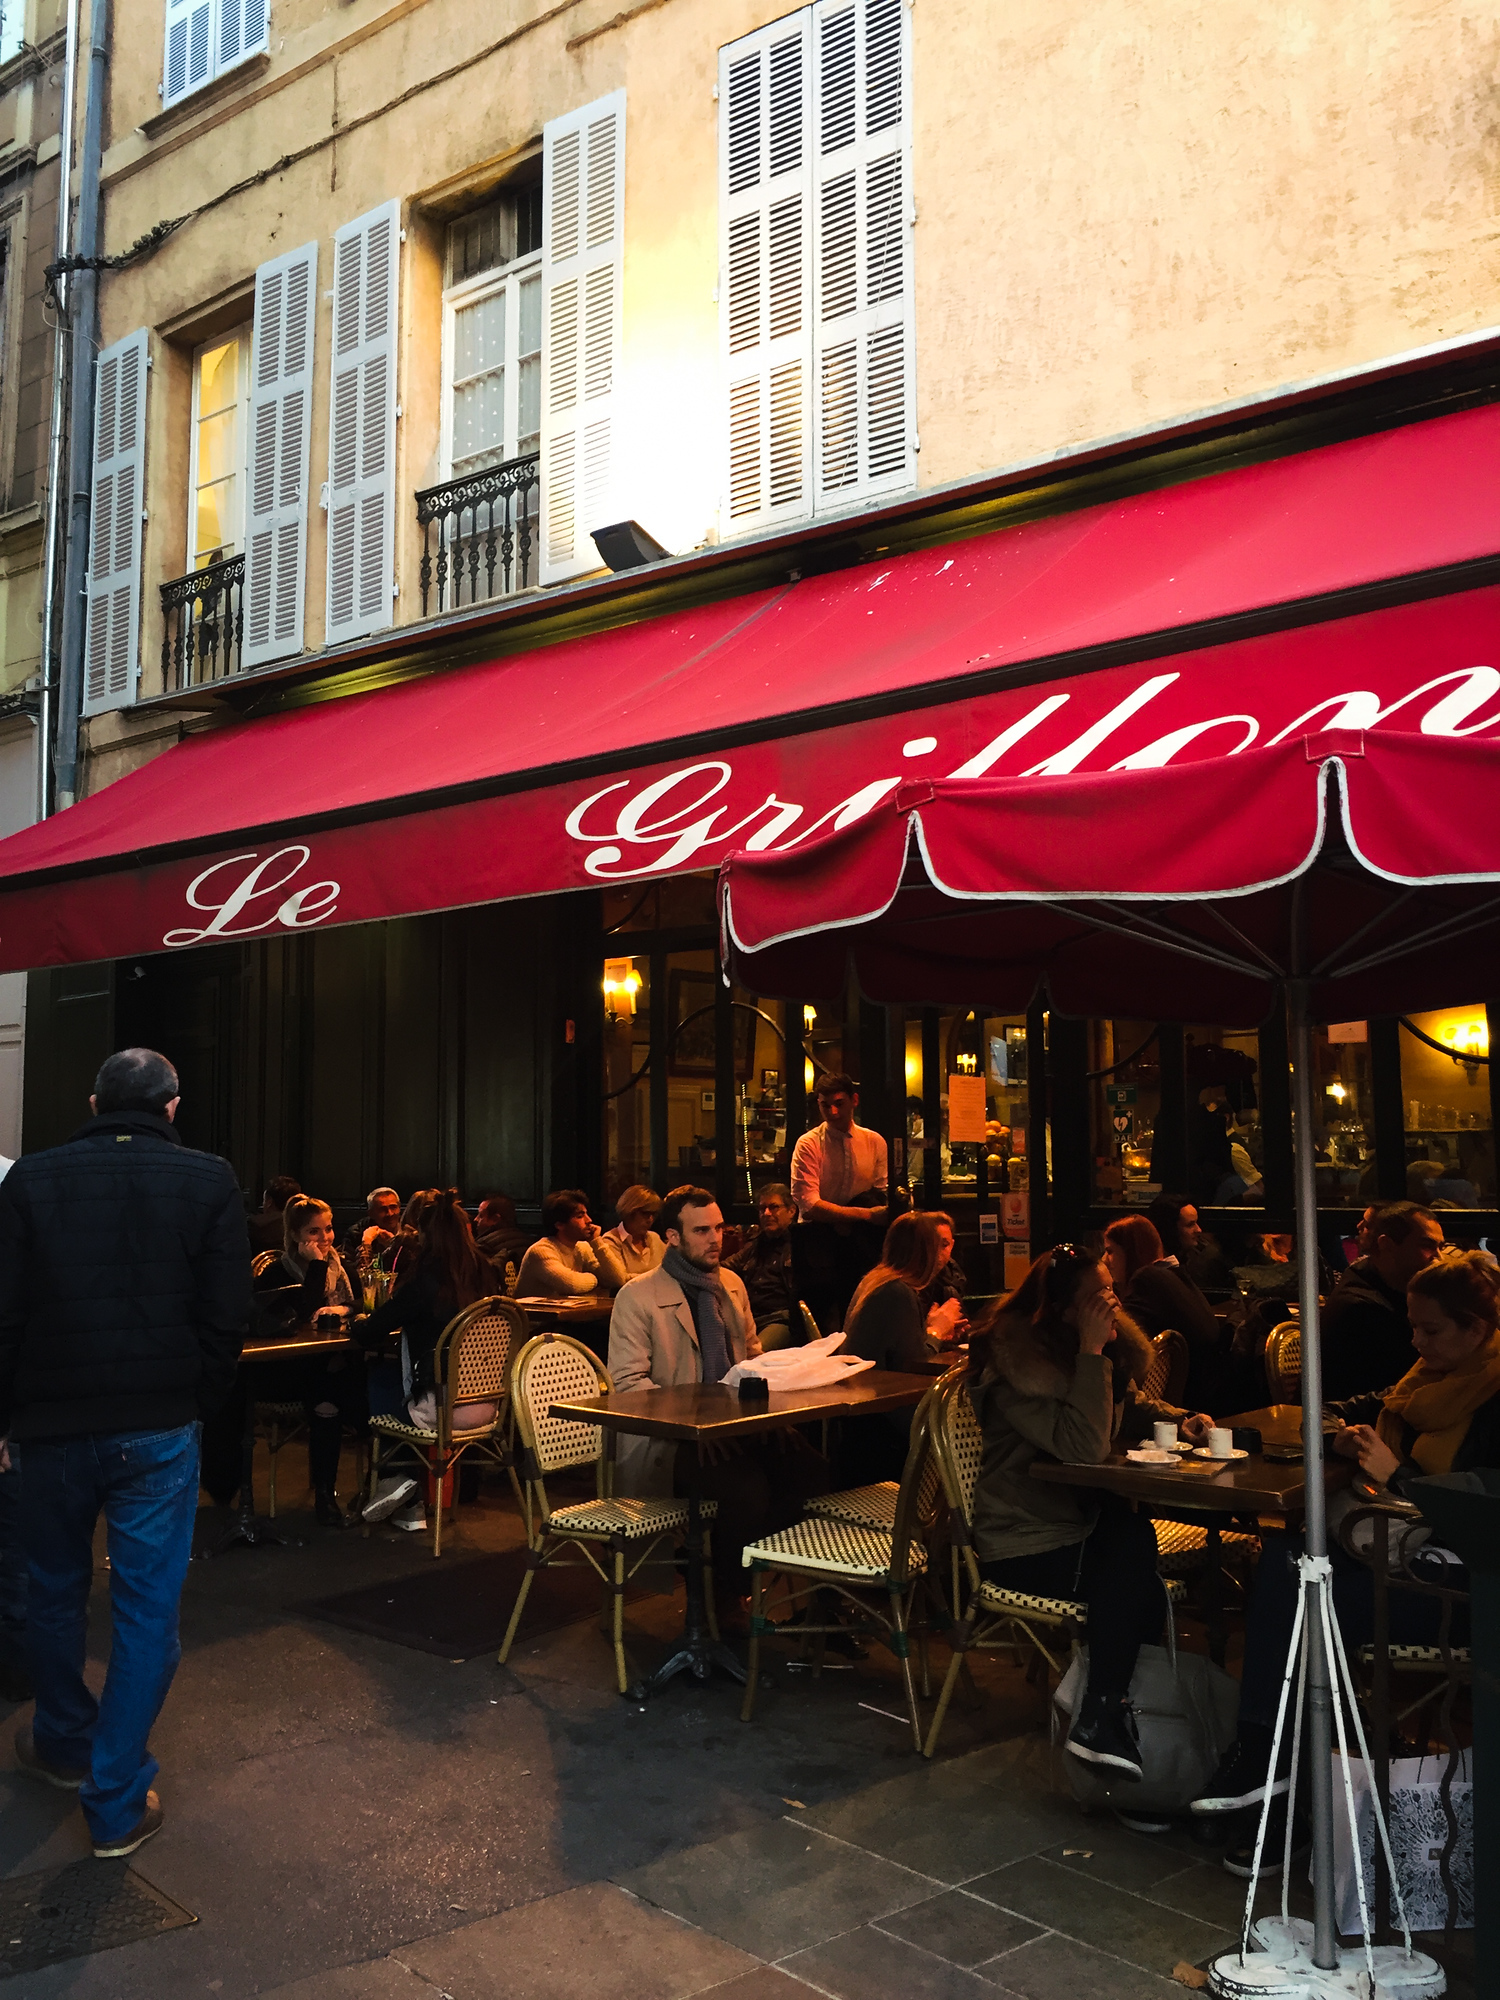 Le Grillon is one of the most popular cafes in Aix en Provence. Check out our top locals' picks on where to eat in Aix en Provence and avoid the tourist traps.